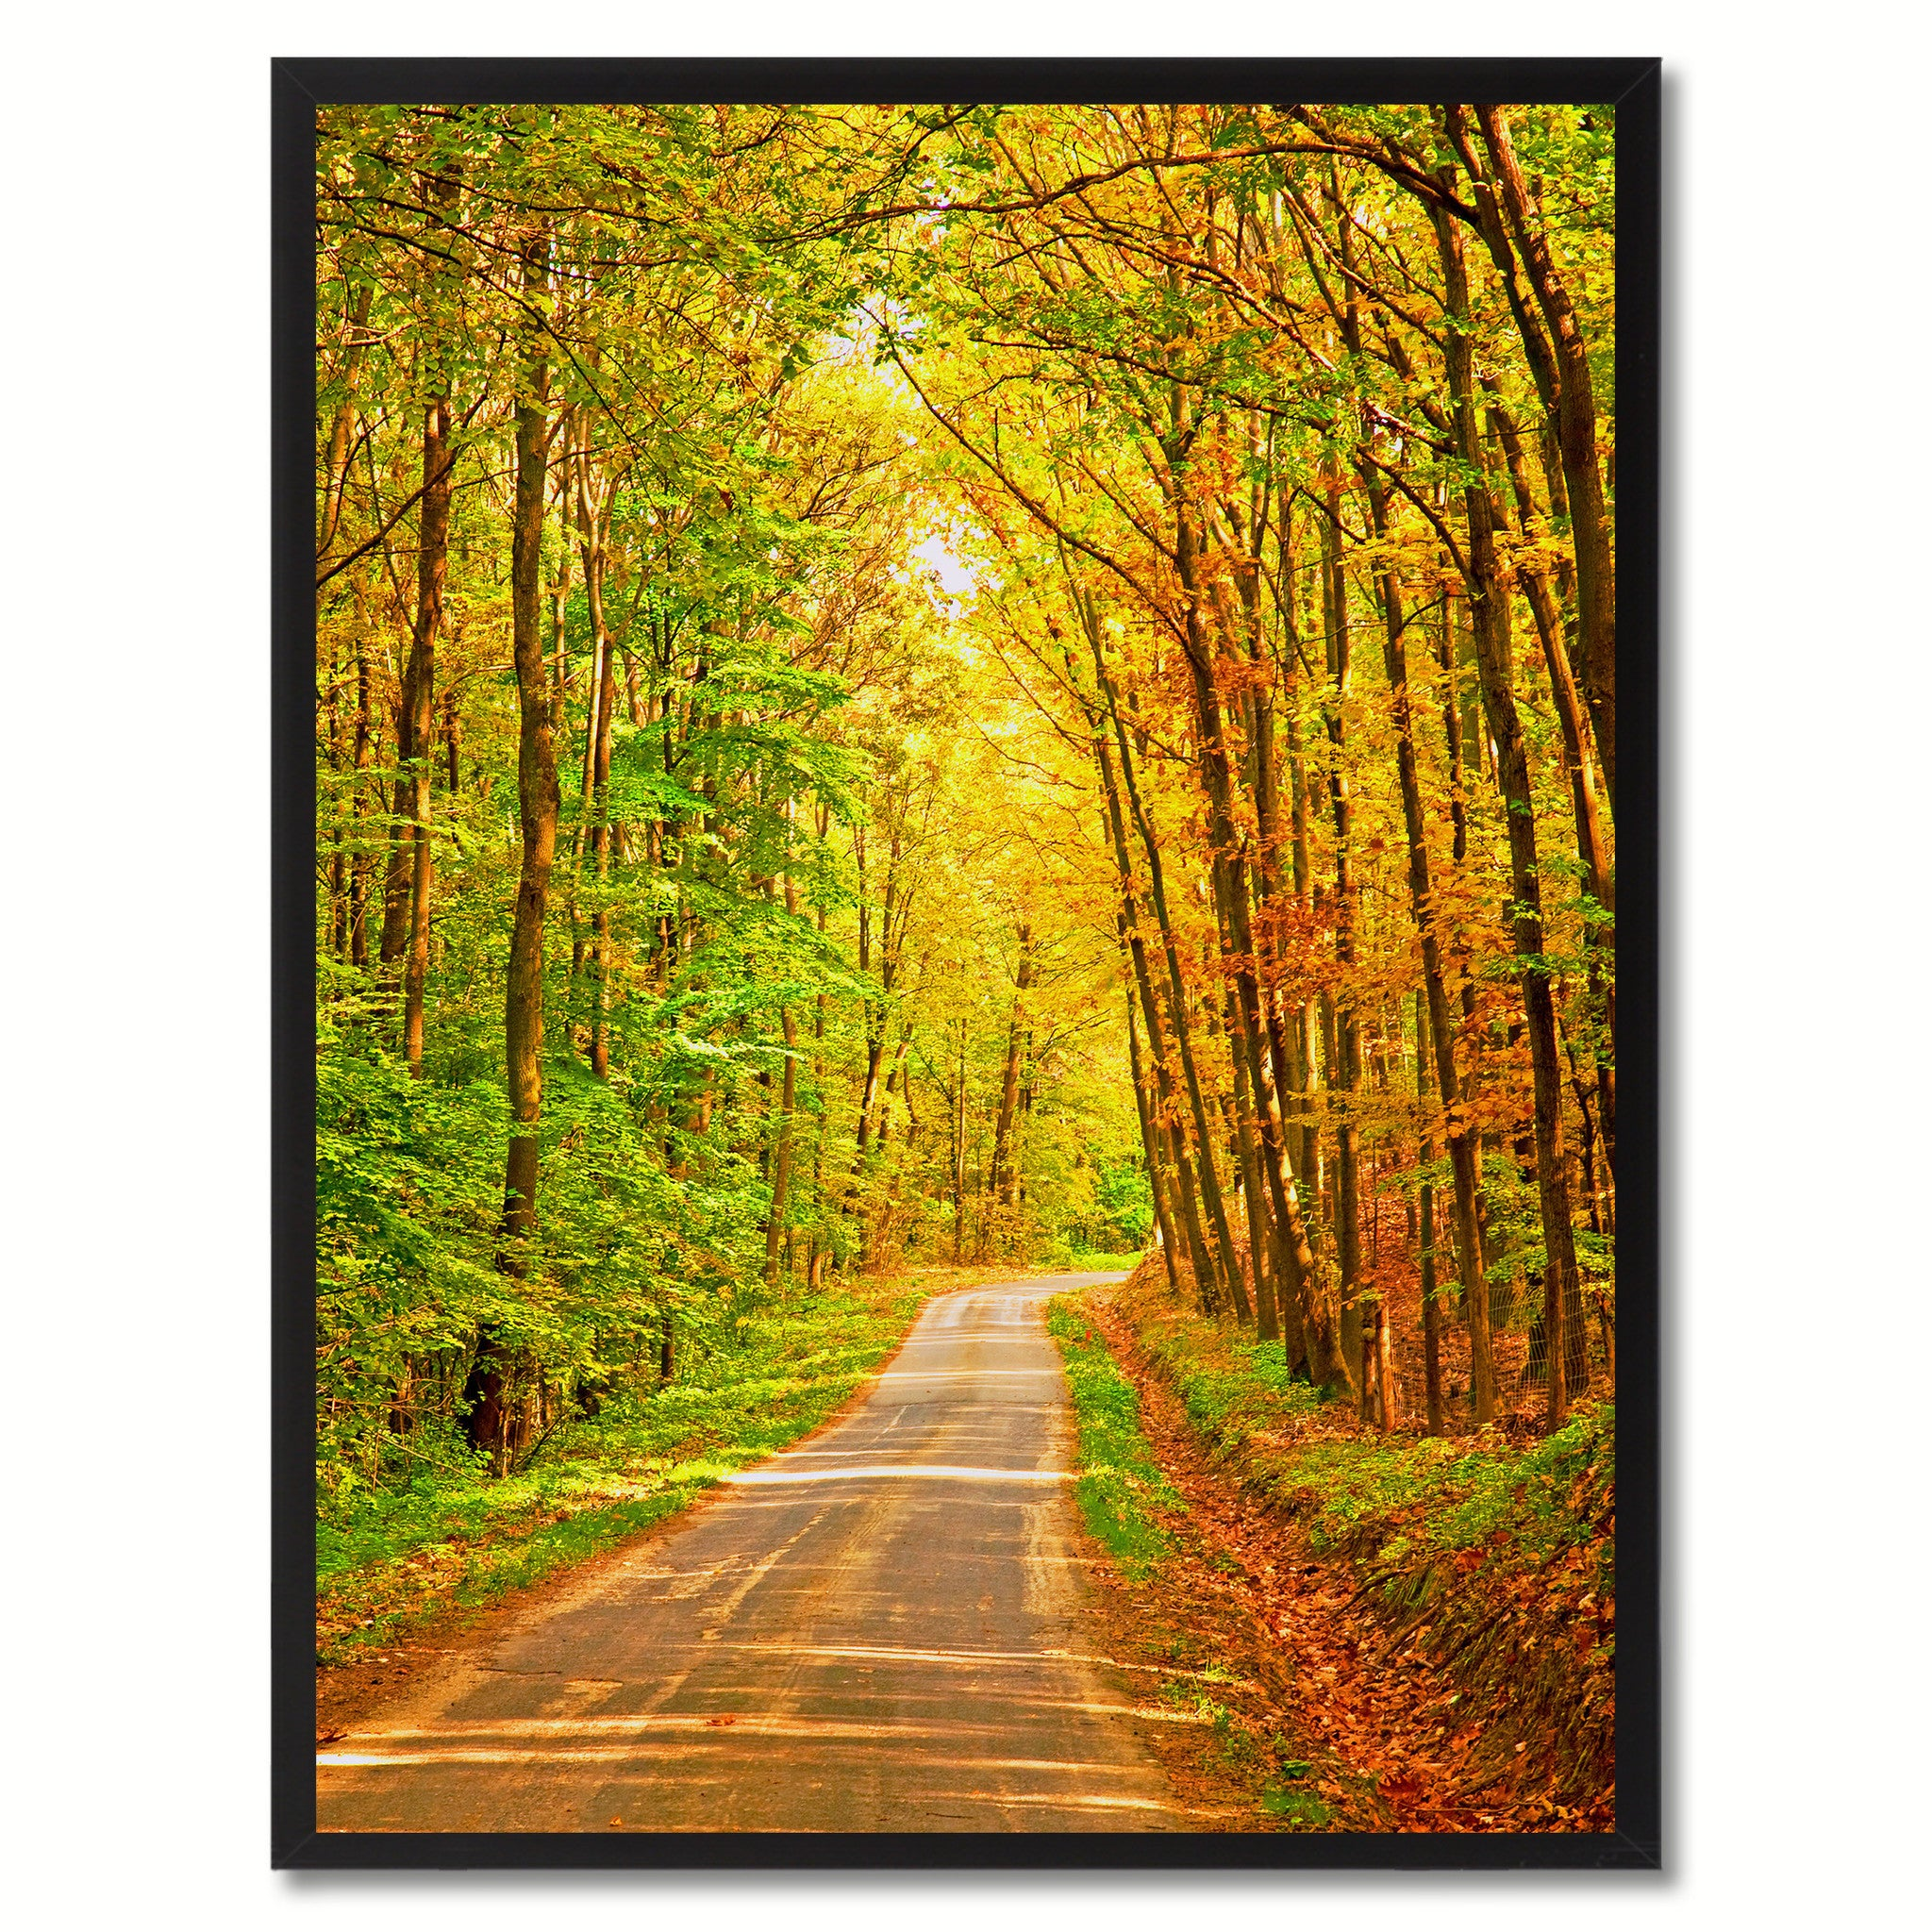 Forest Wood Landscape Photo Canvas Print Pictures Frames Home Décor Wall Art Gifts